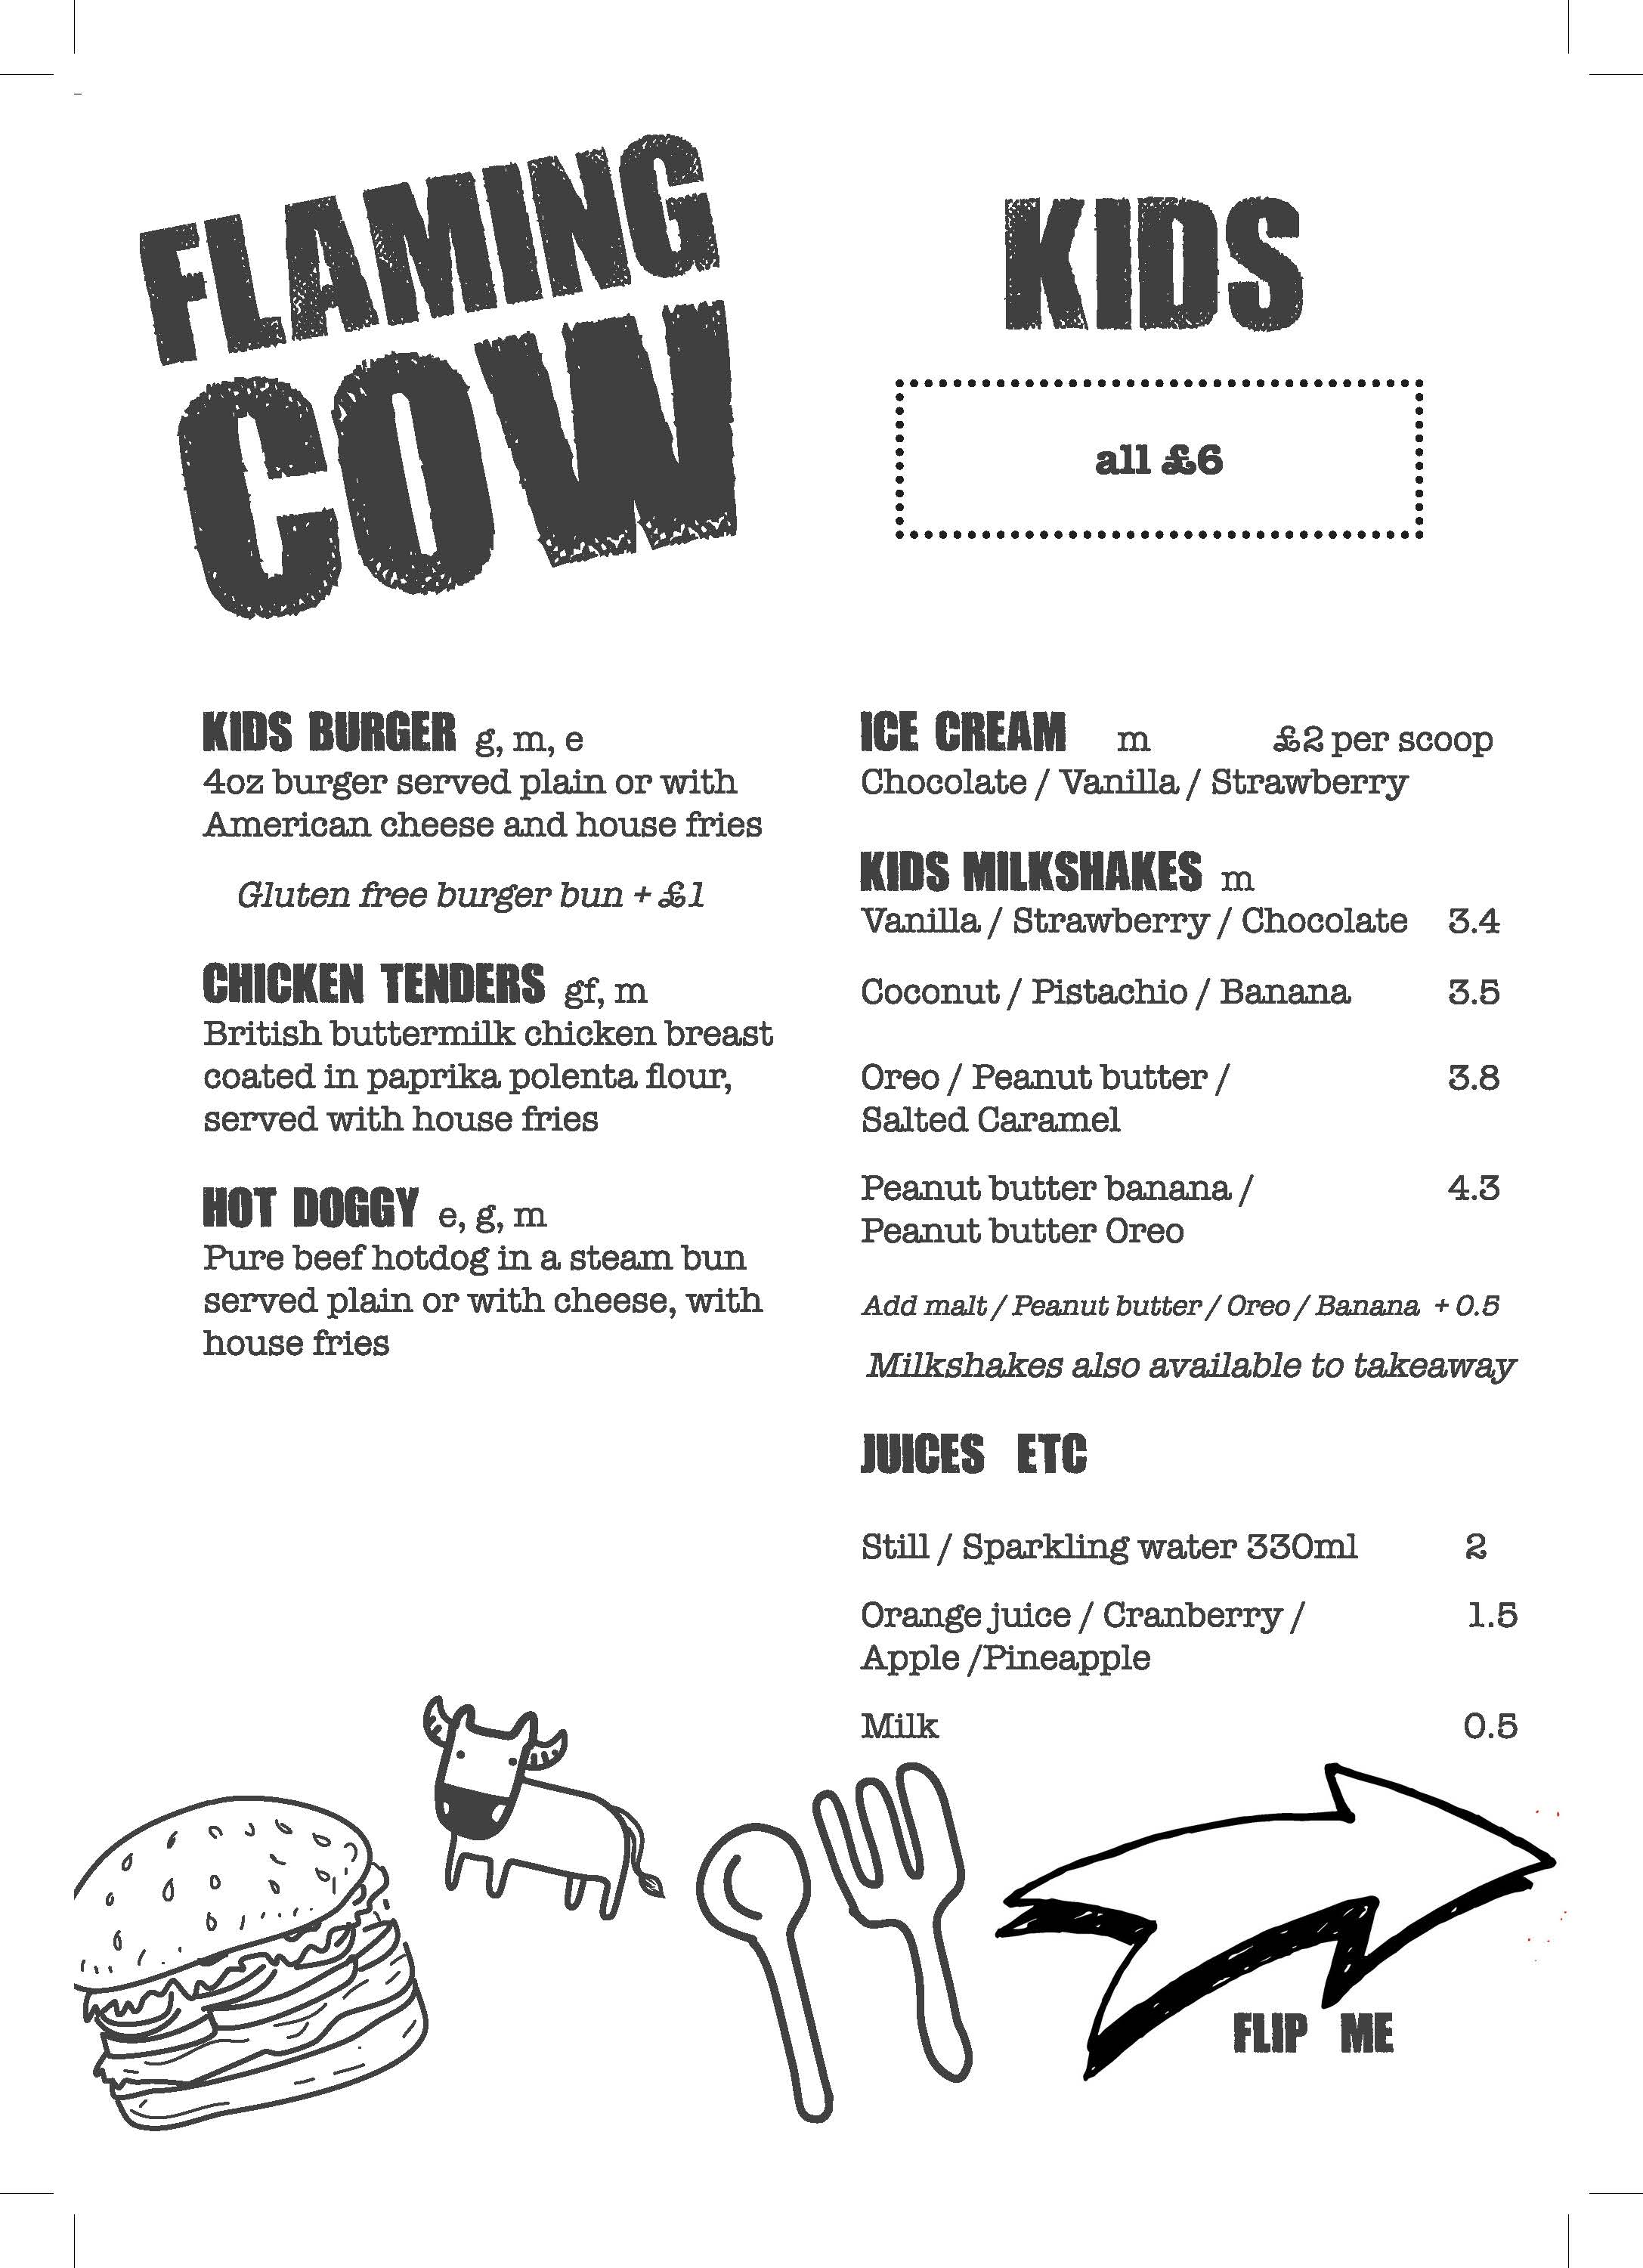 Flaming Cow - Kids menu